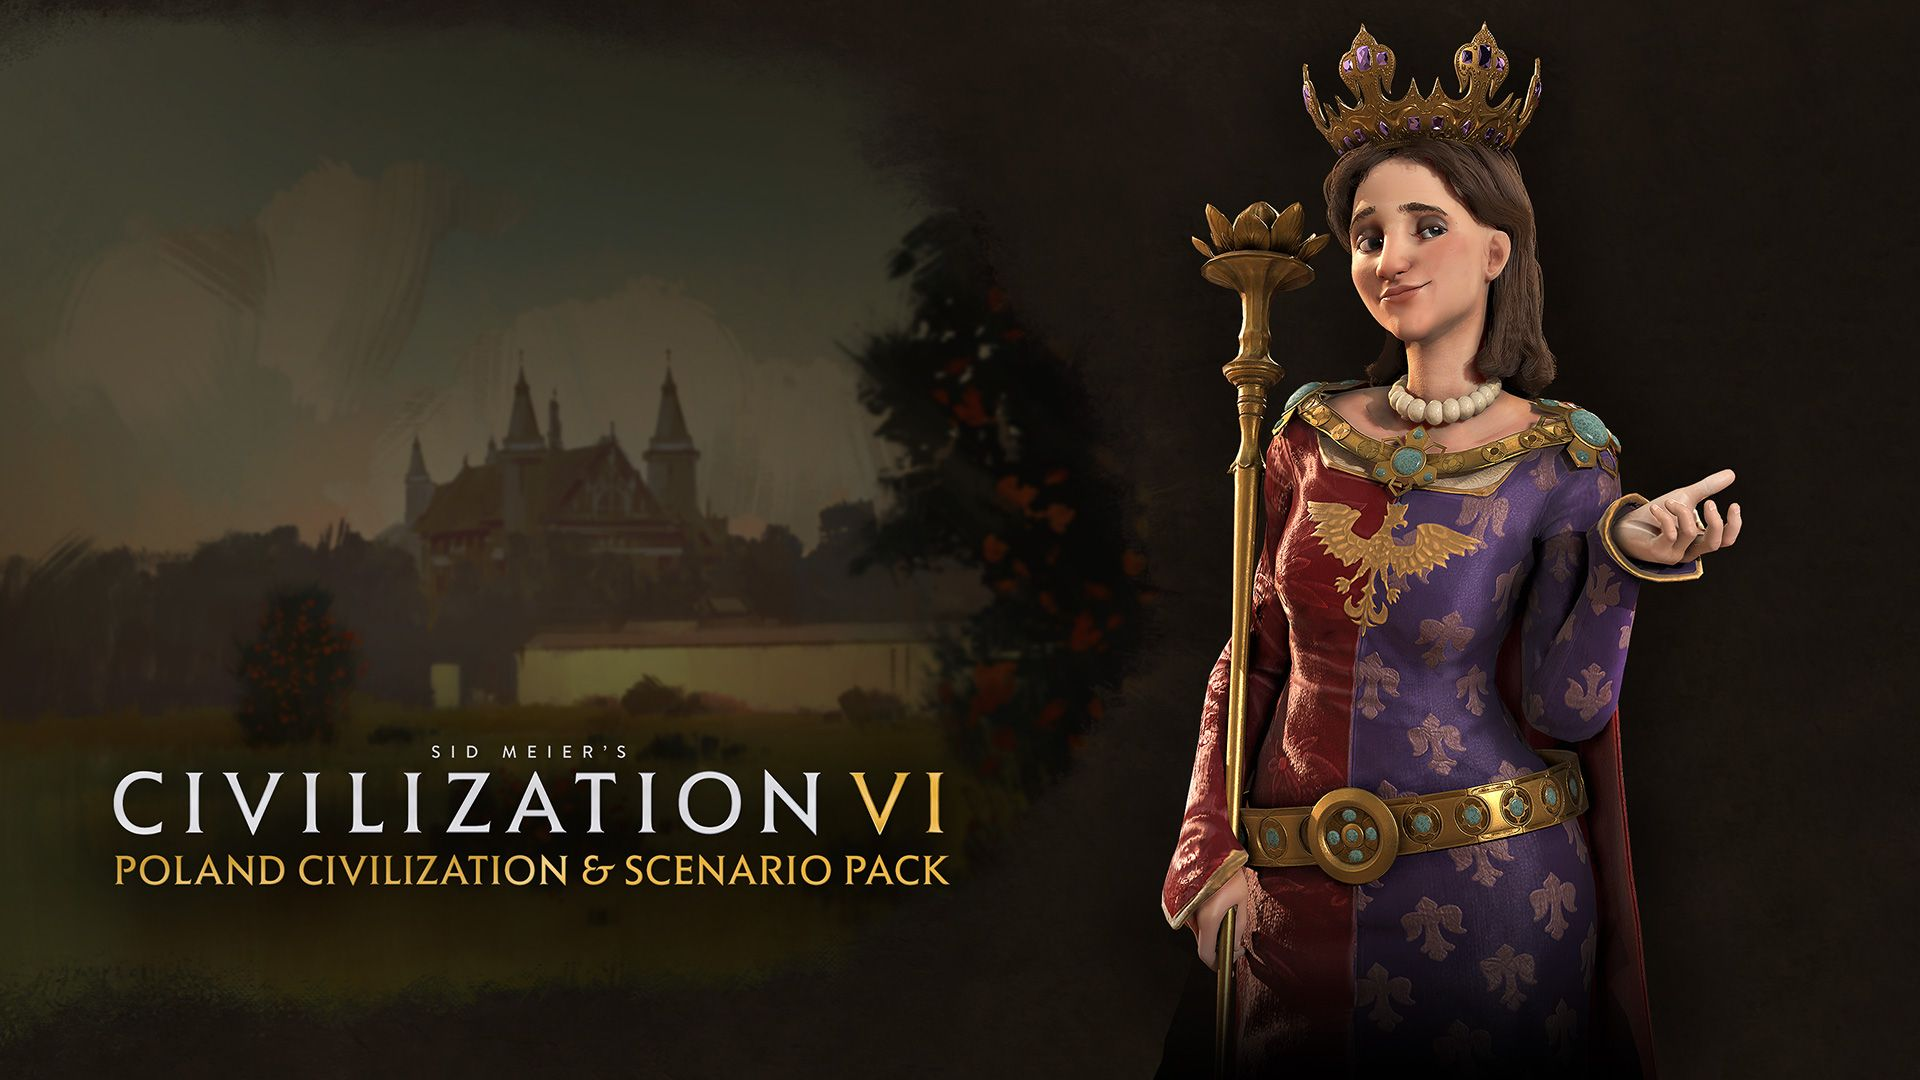 2KGMKT_CivilizationVI_DLC-Poland_Key_Art